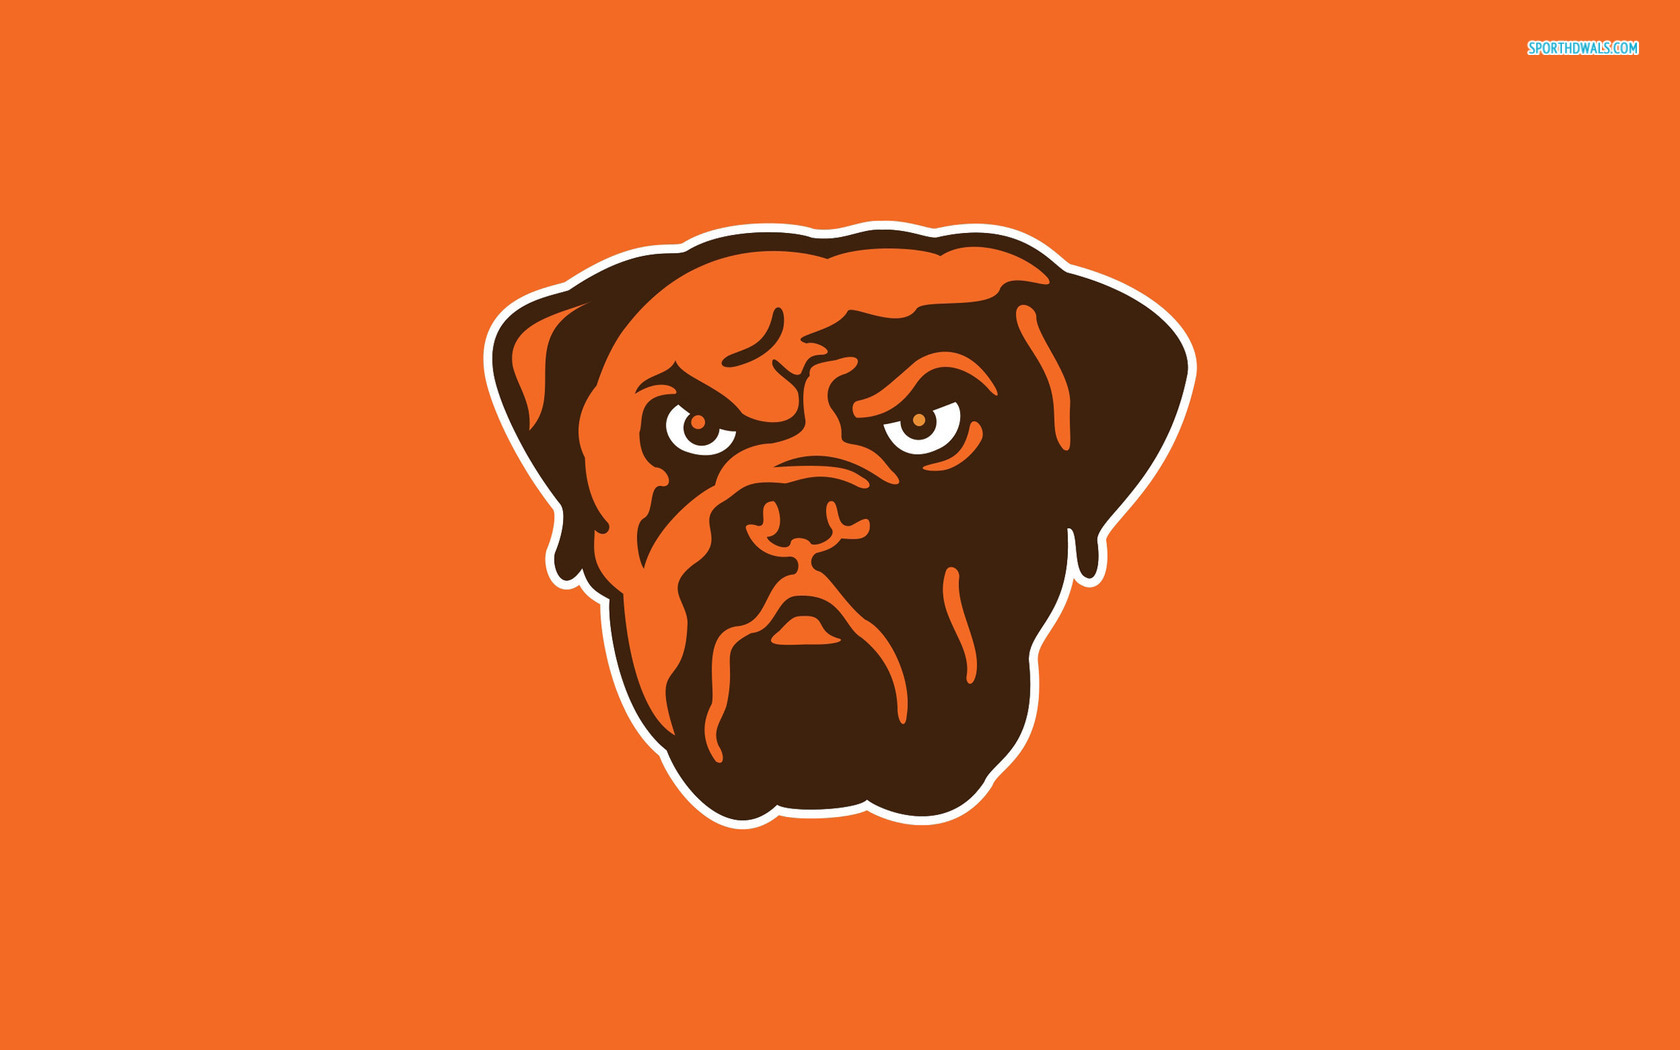 Cleveland Browns   Bulldog Mascot Wallpaper for Phones and Tablets 1680x1050